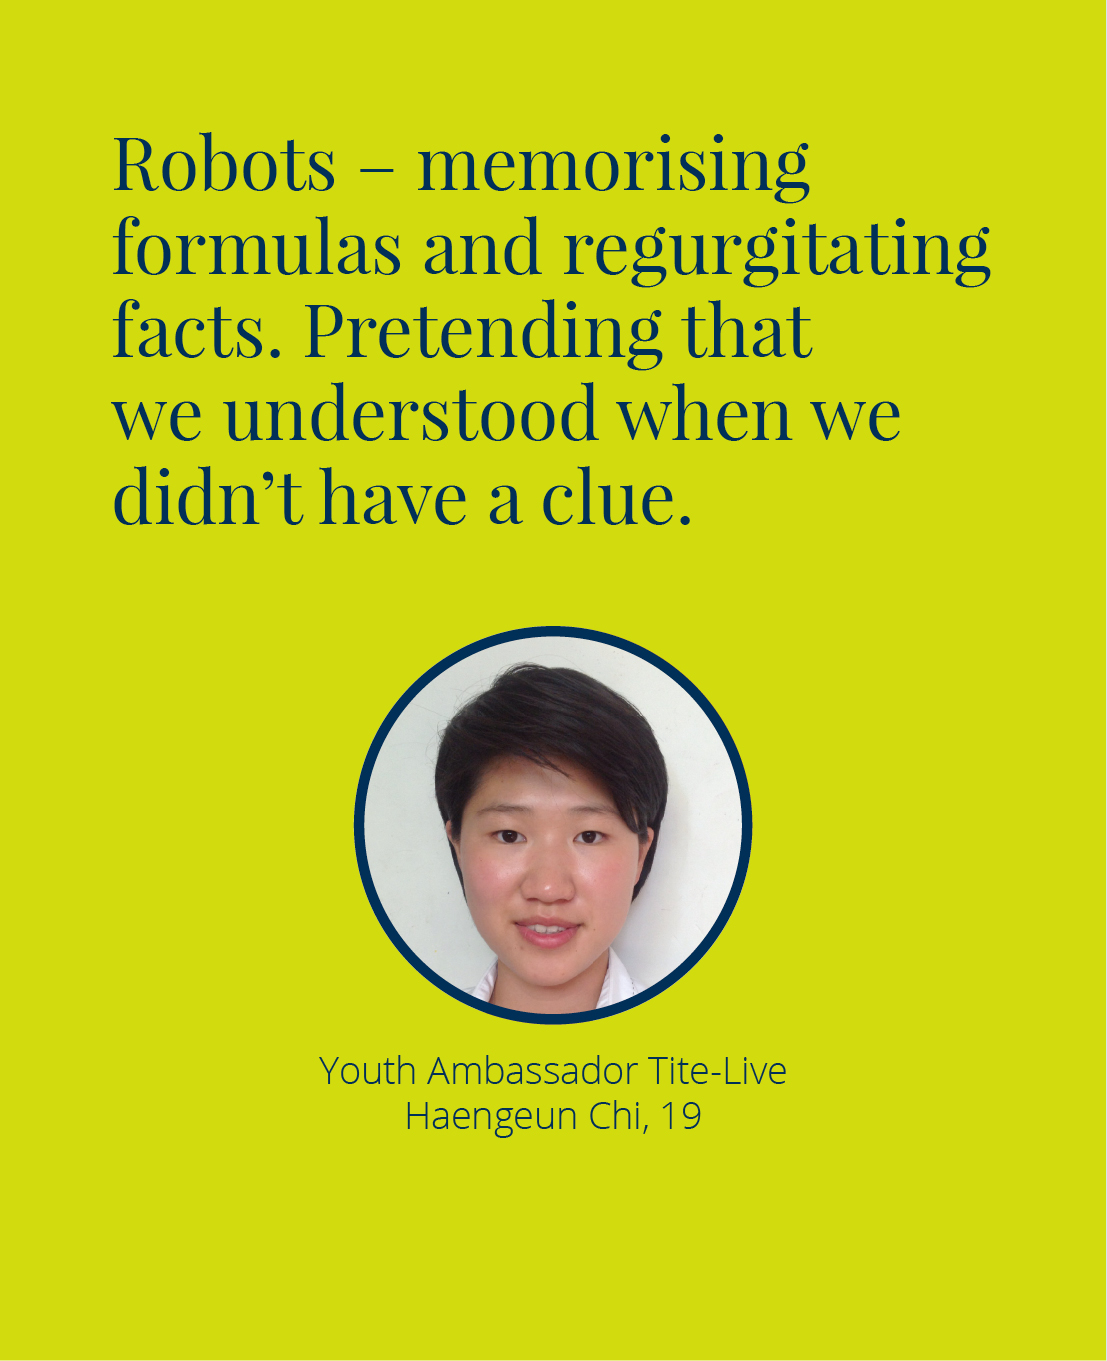 Robots – memorising formulas and regurgitating facts. Pretending that we understood when we didn't have a clue